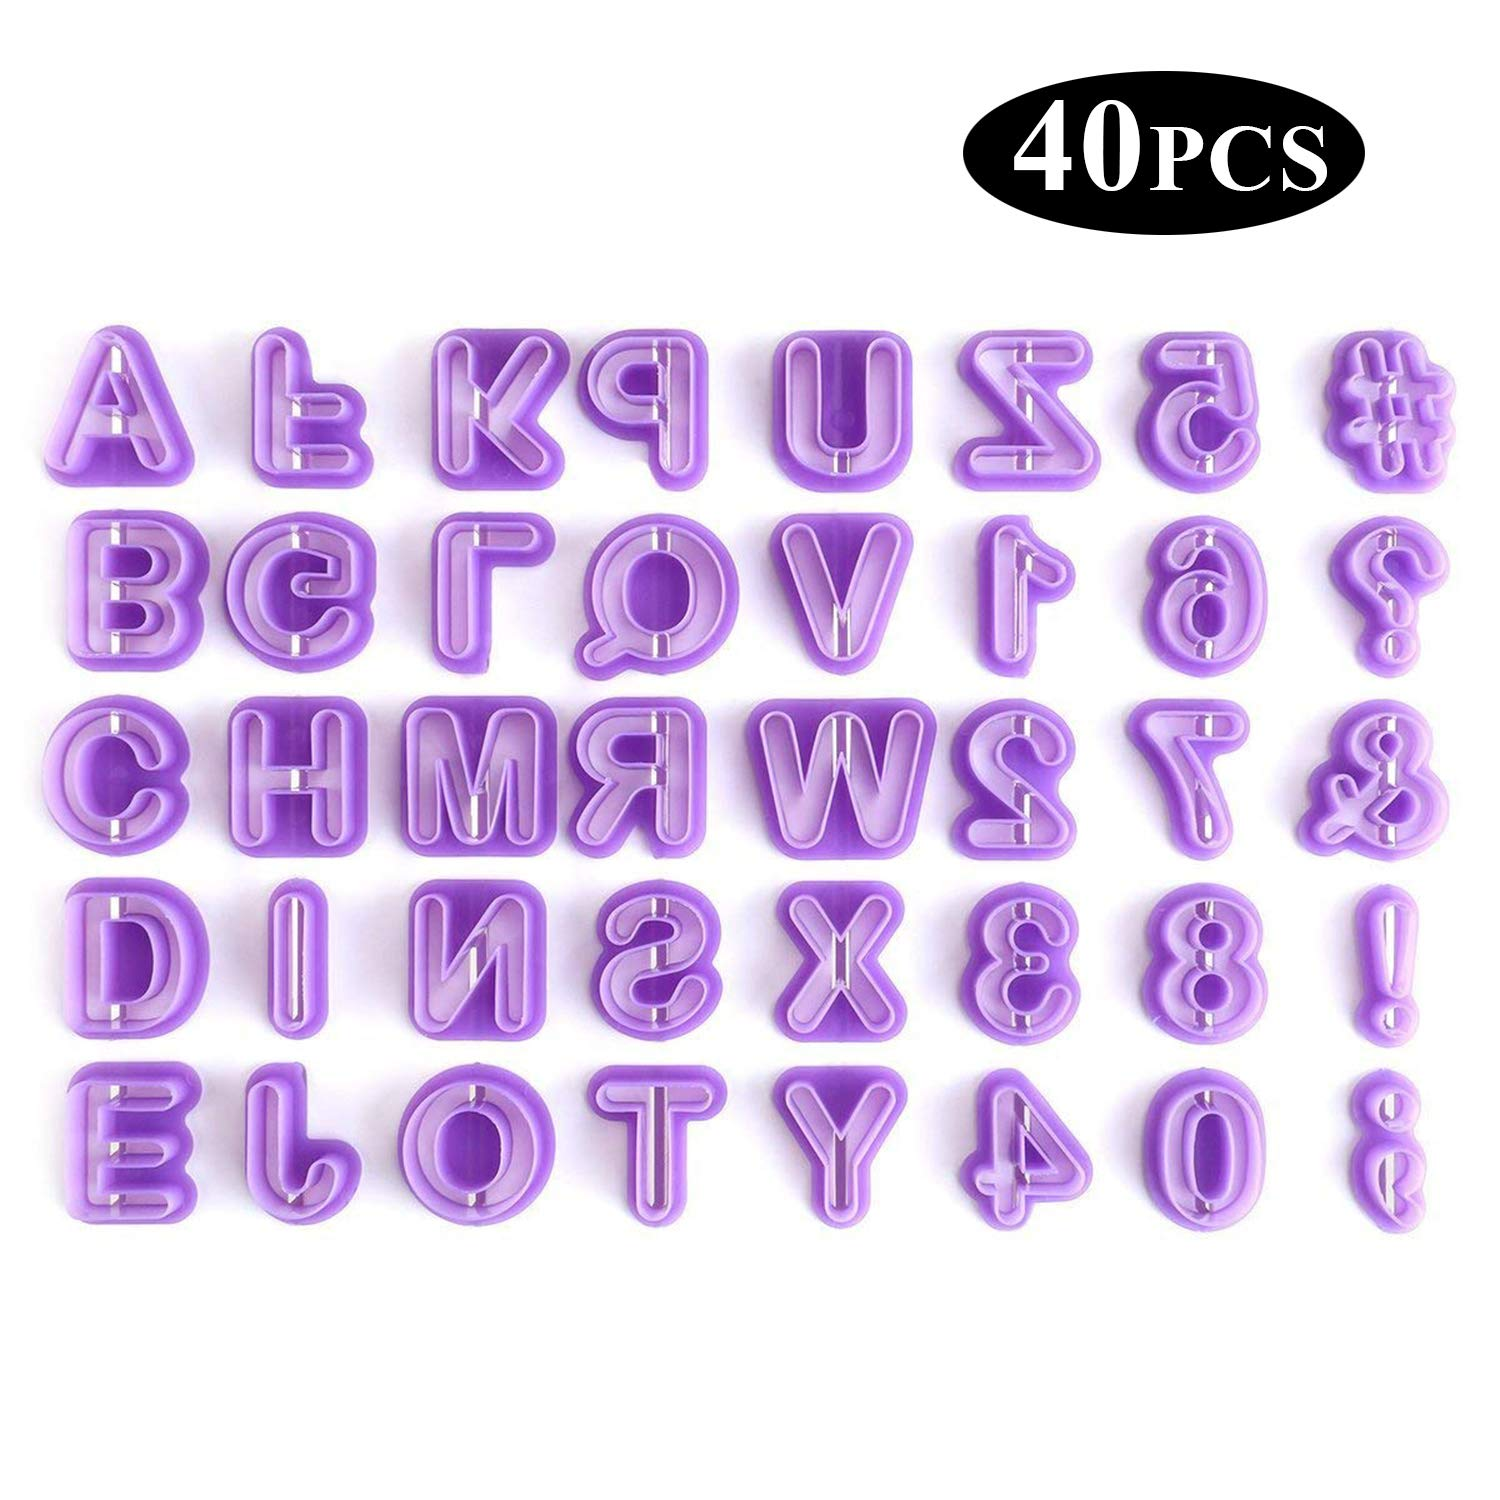 Cookie Cutters - YeeStone 40PCS Cookie Fondant Mould Alphabet Cutters Letter Cutters - for Fondant Icing Baking Cake Decorating and Sugarcraft